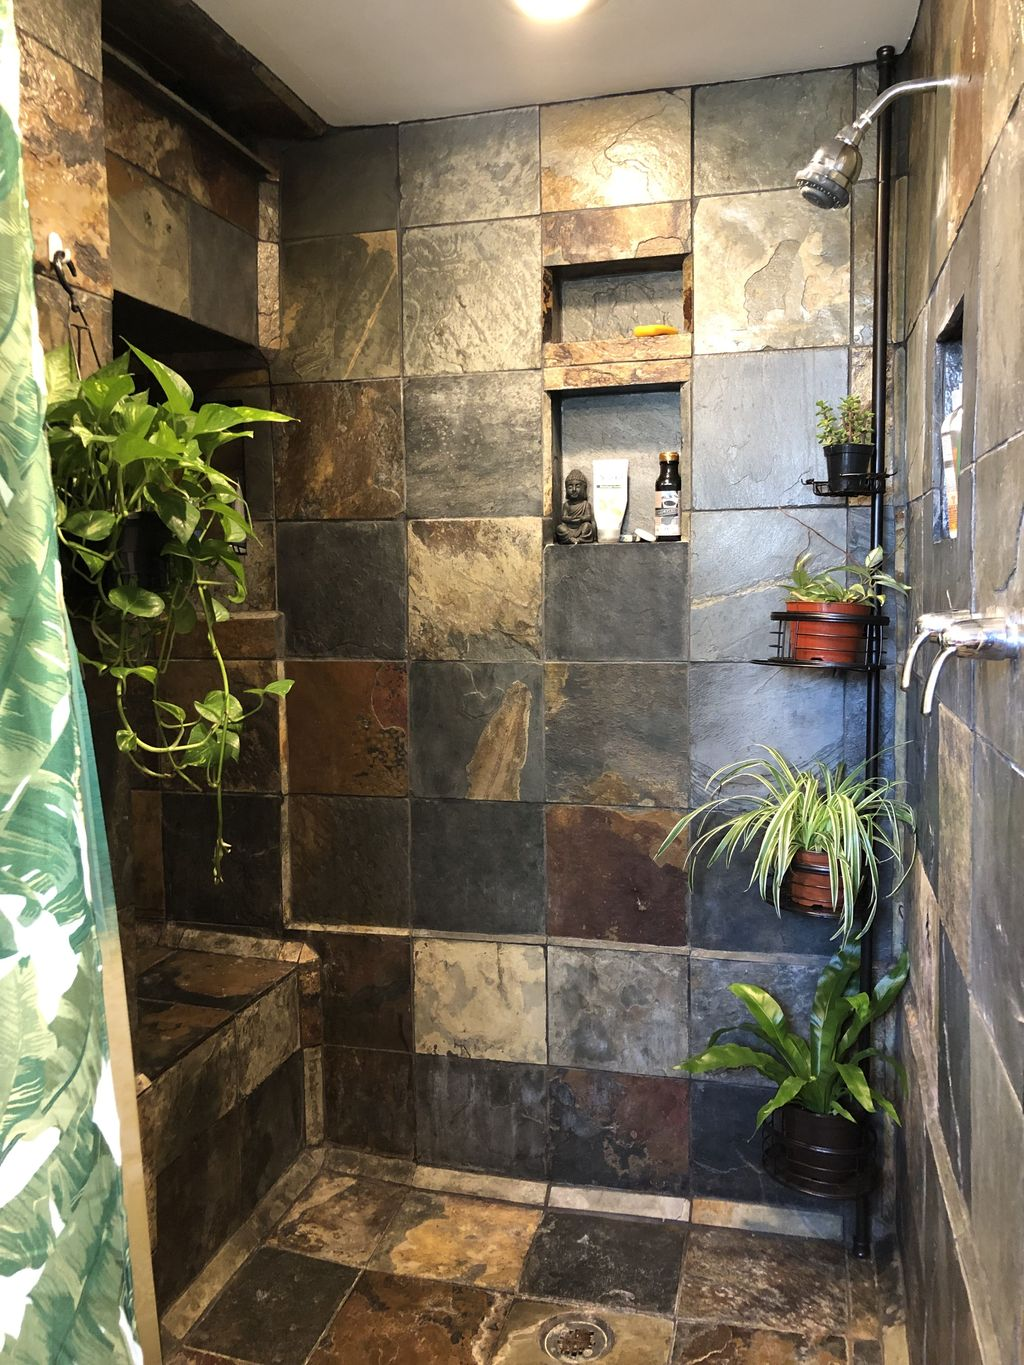 The Best Jungle Bathroom Decor Ideas To Get A Natural Impression 03